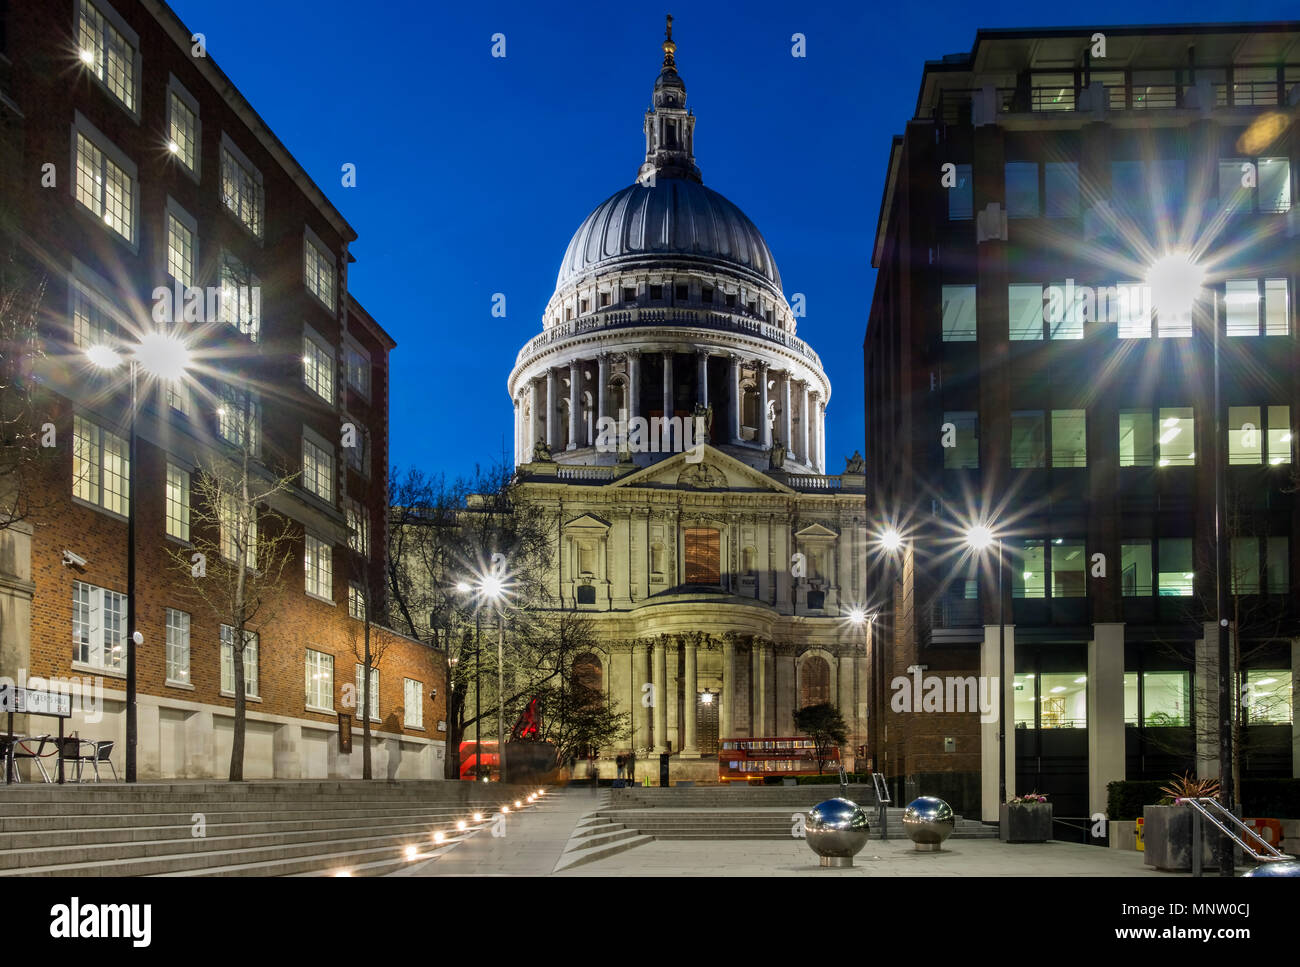 Cathédrale St Paul de Peters Hill at night, London, England, UK Photo Stock